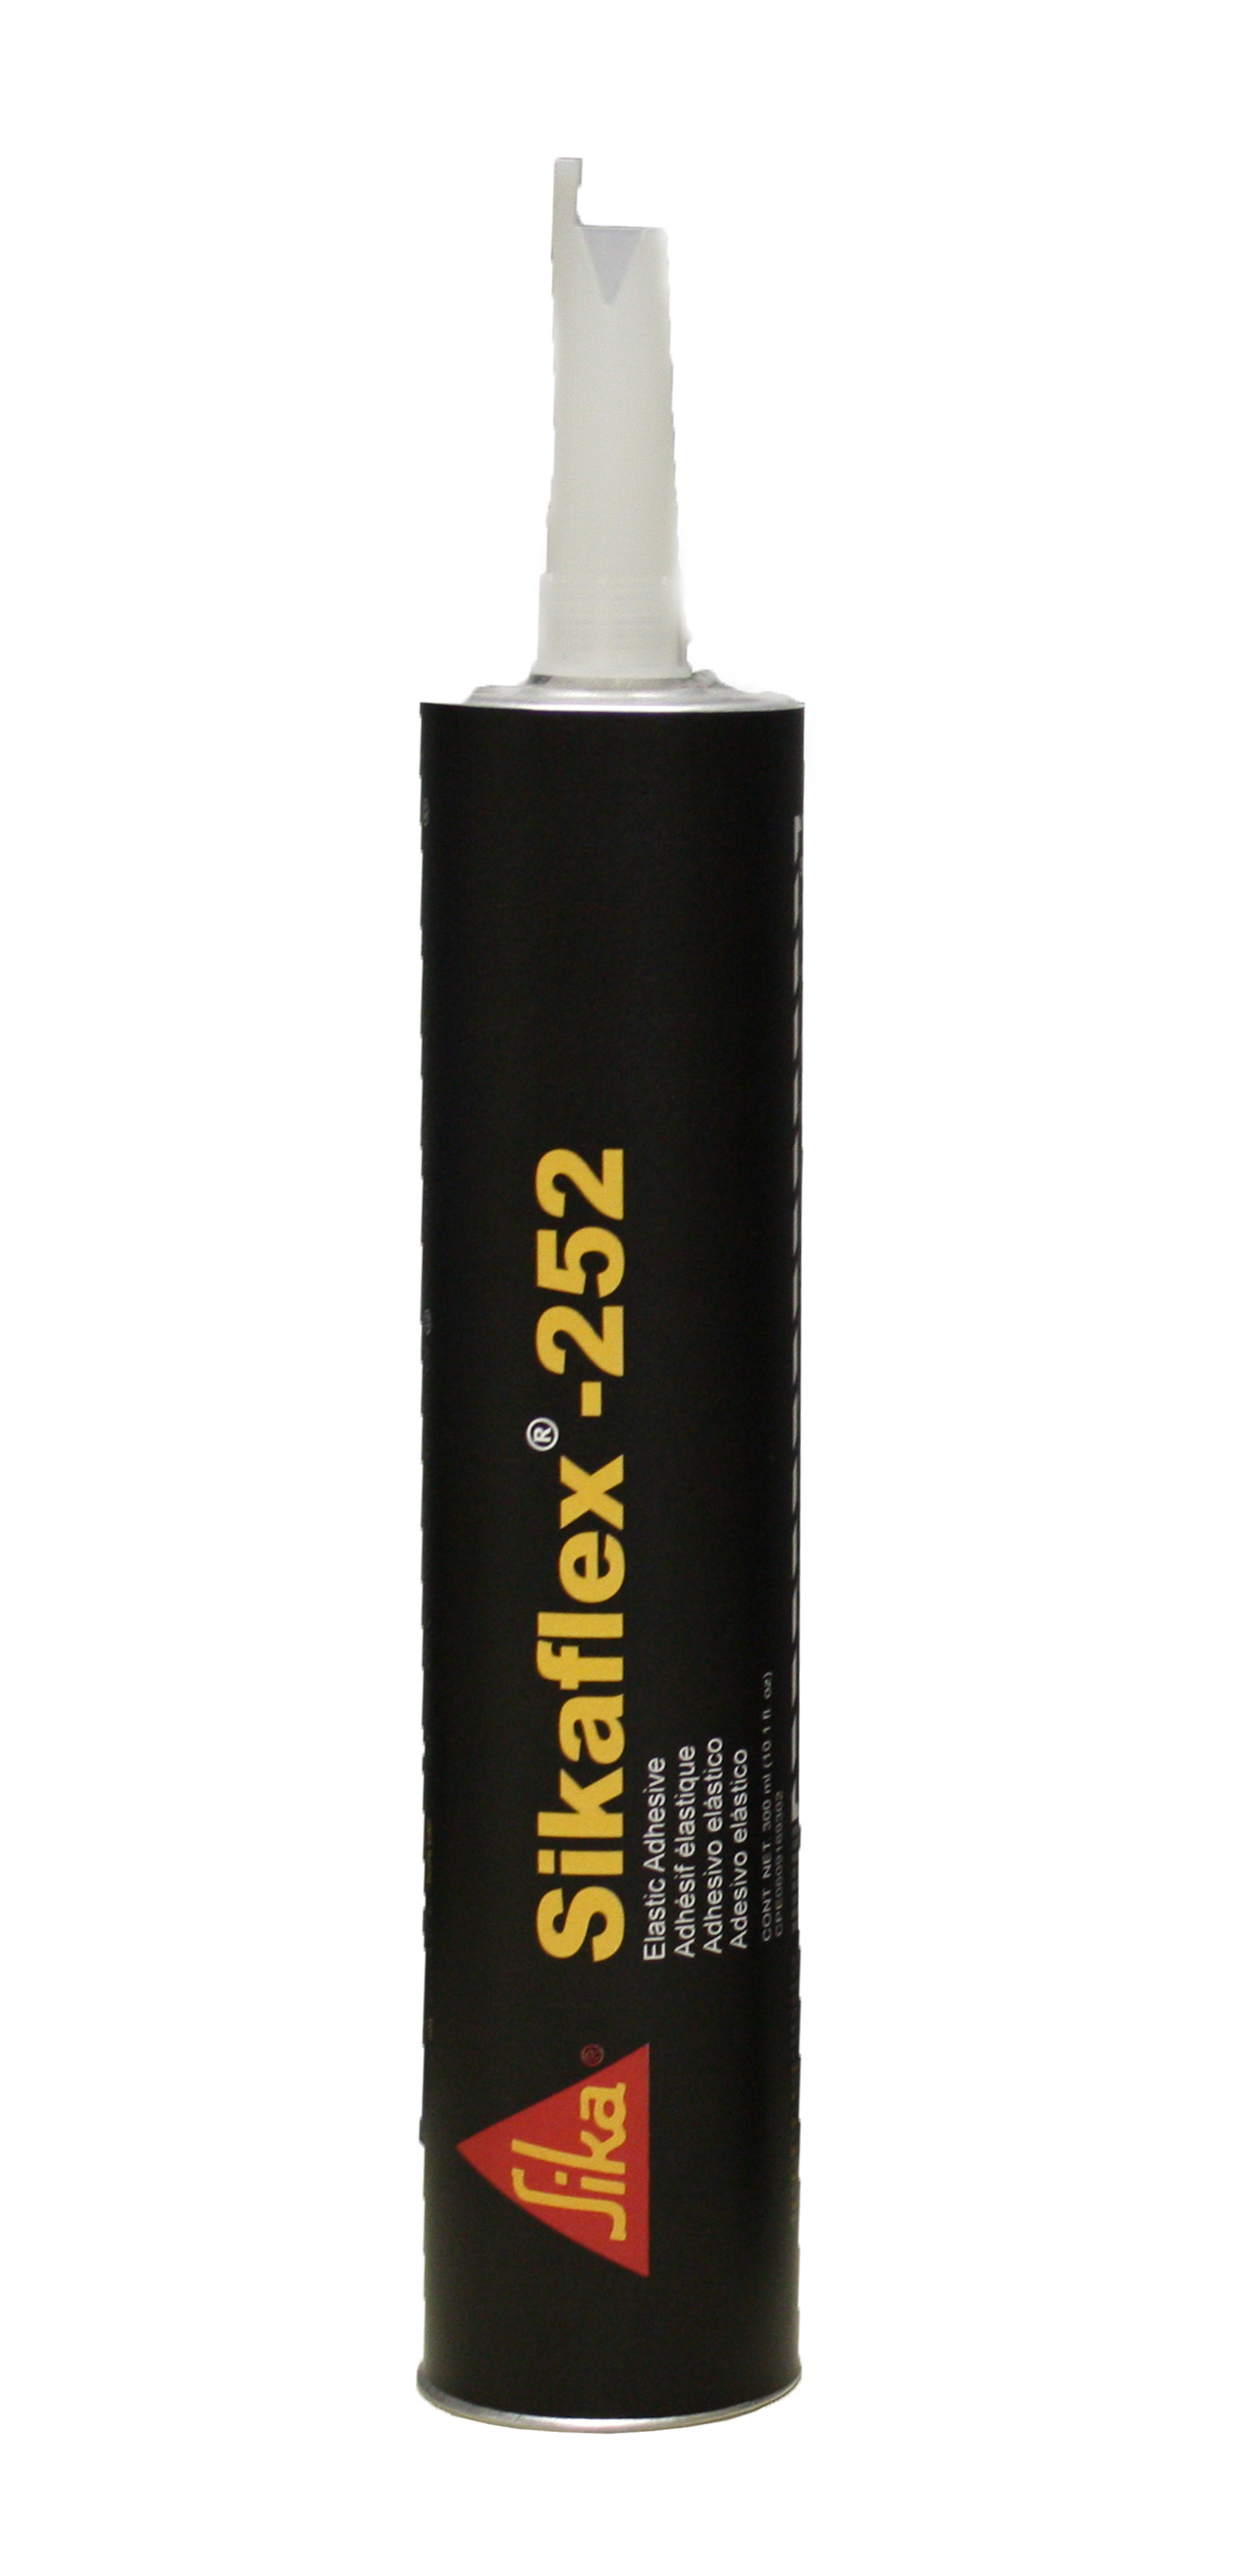 017-90915 AP Products Adhesive Sealant Used To Bond And Seal Wide